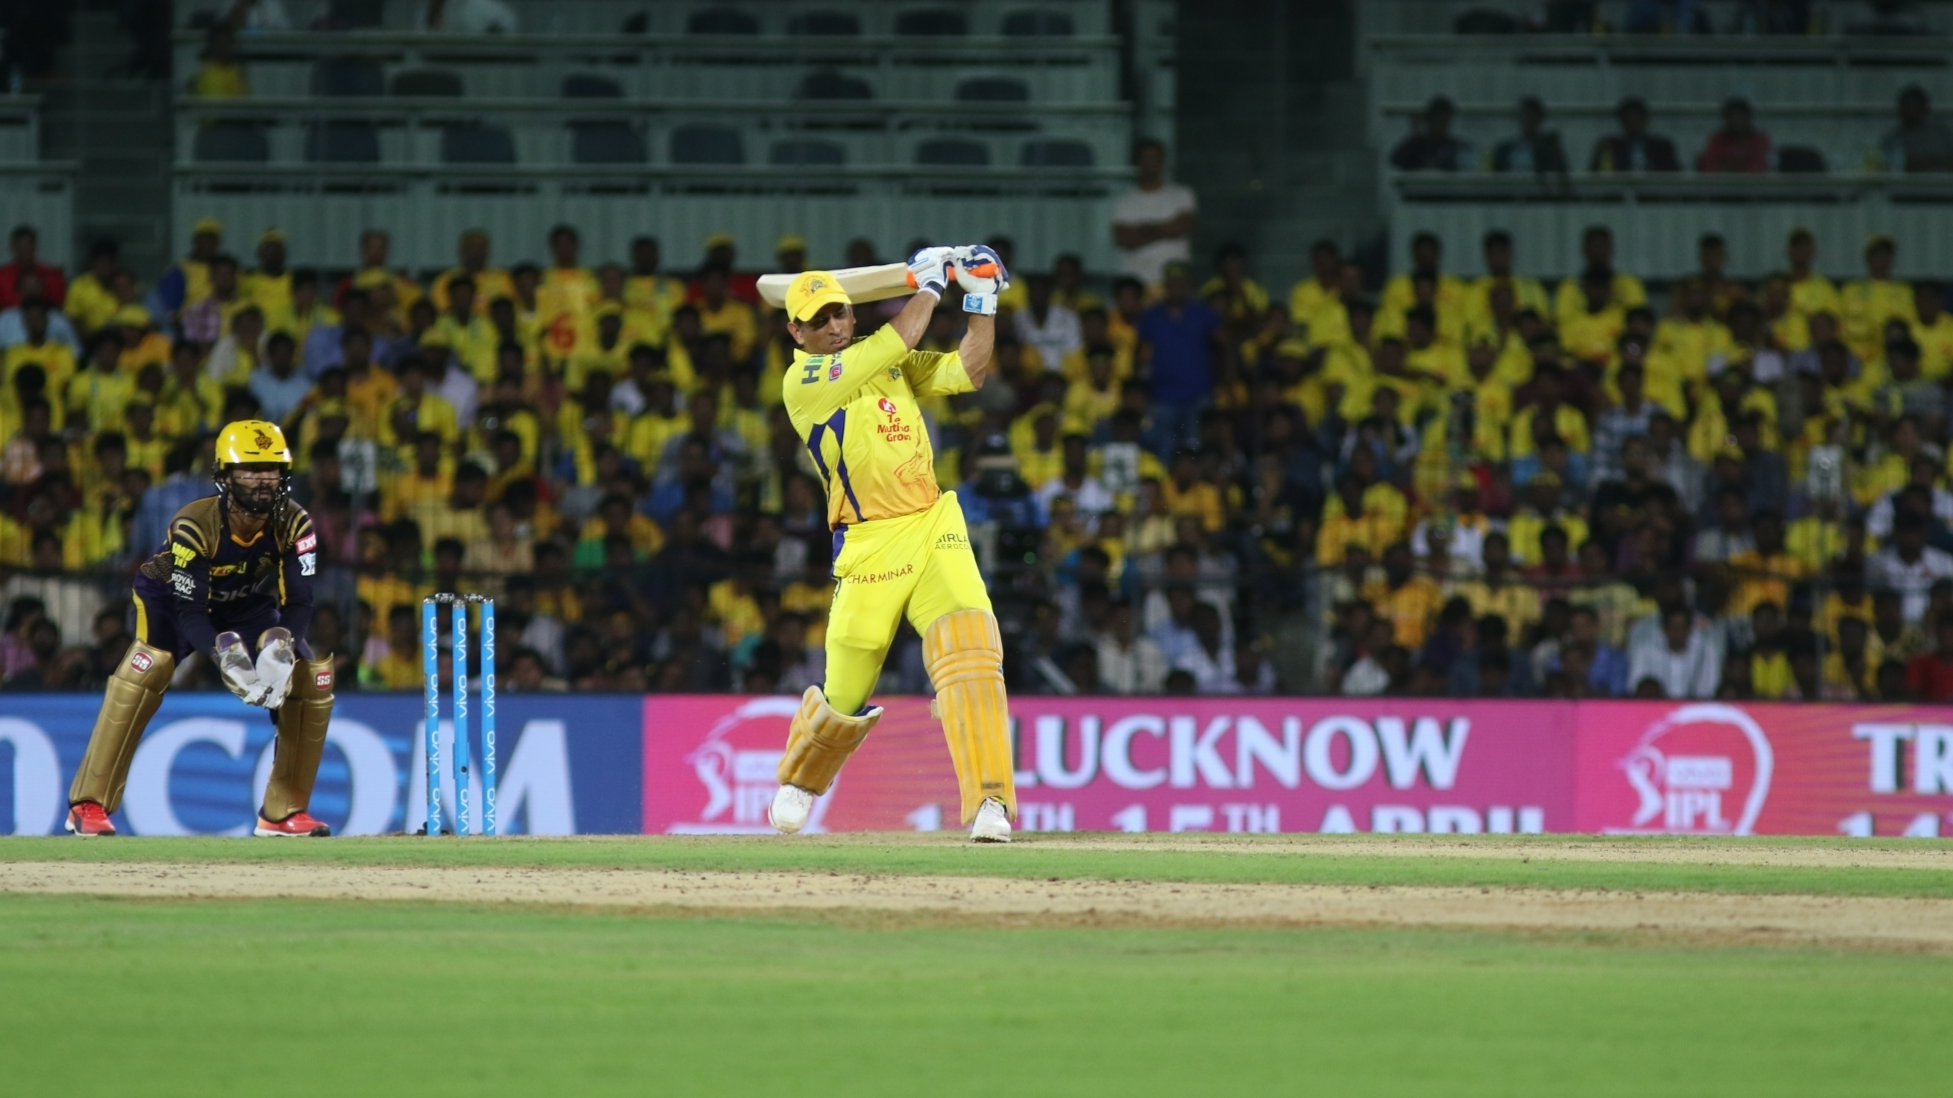 IPL 2018: MS Dhoni ecstatic after Chennai Super Kings' nerve-wrecking victory on homecoming